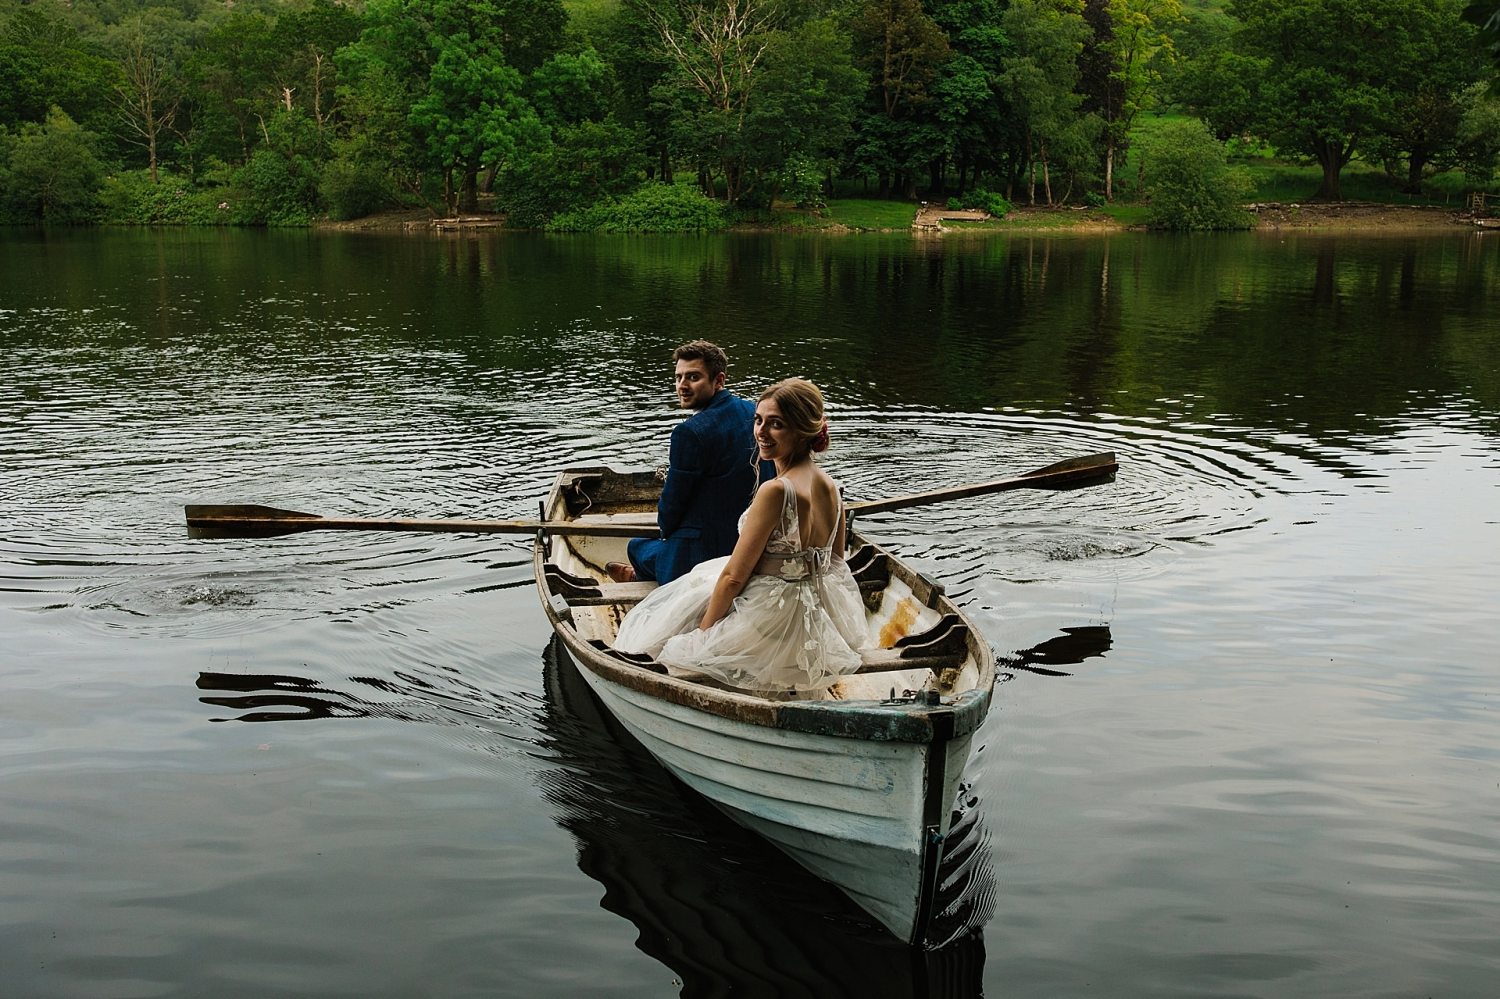 Whyresdale Park lancashire wedding venue bride and groom . on the lake photography